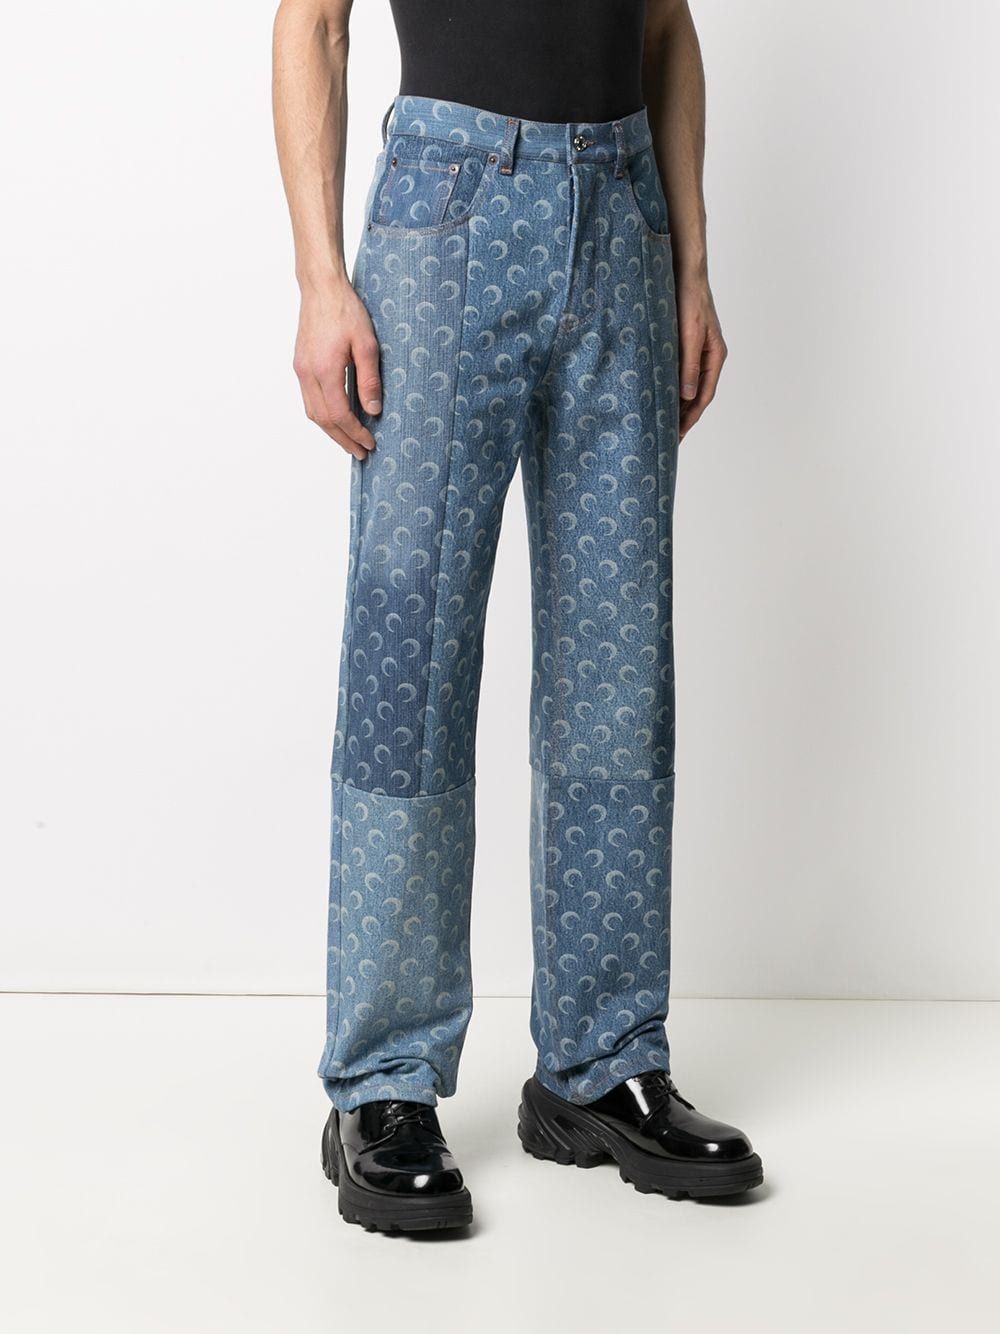 MOON DENIM TROUSERS MARINE SERRE | Trousers | P021ICONM-DENCO000406